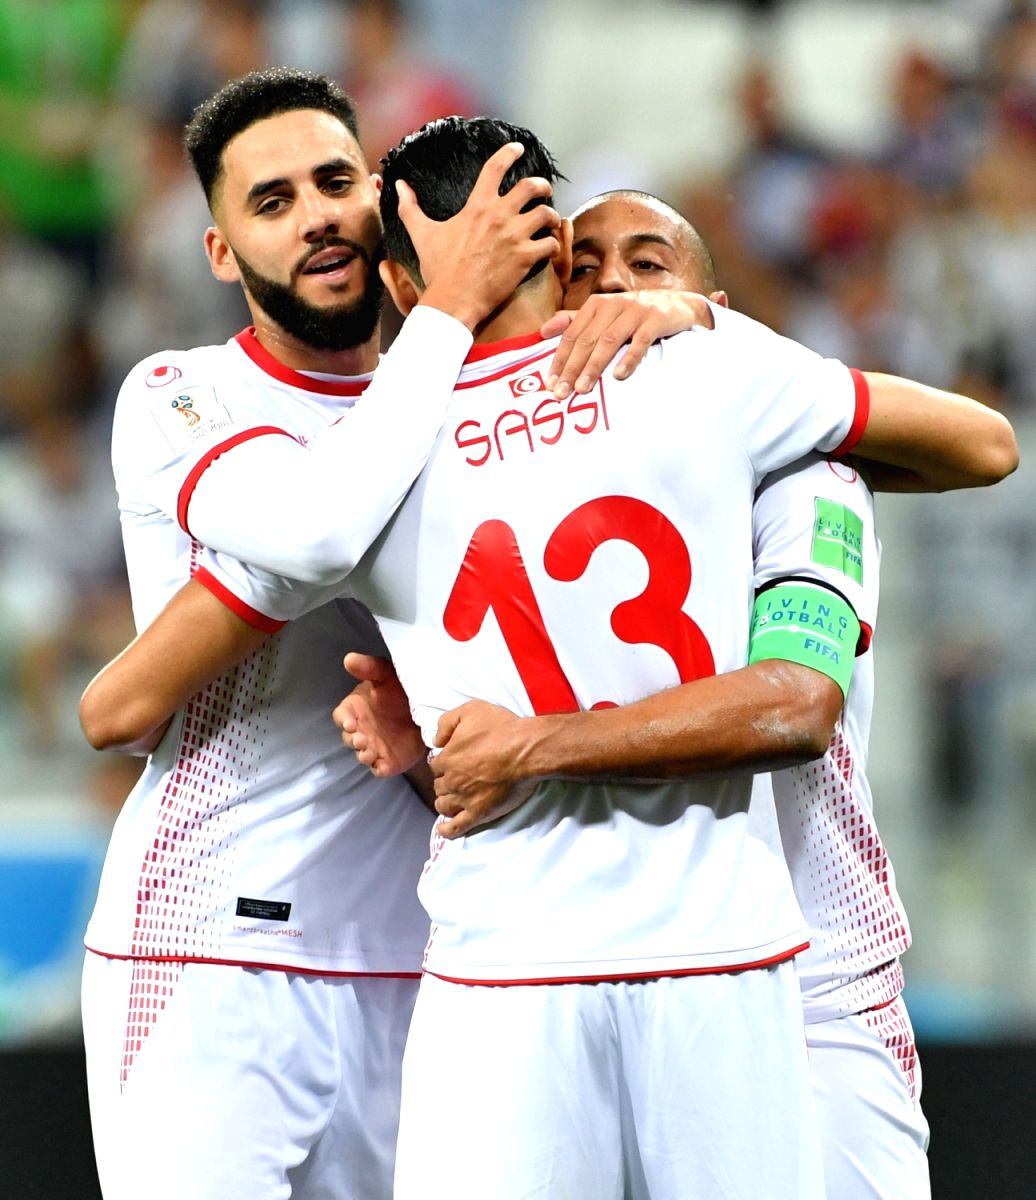 Tough luck for Tunisia as they remain winless in their last 12 World Cup matches.